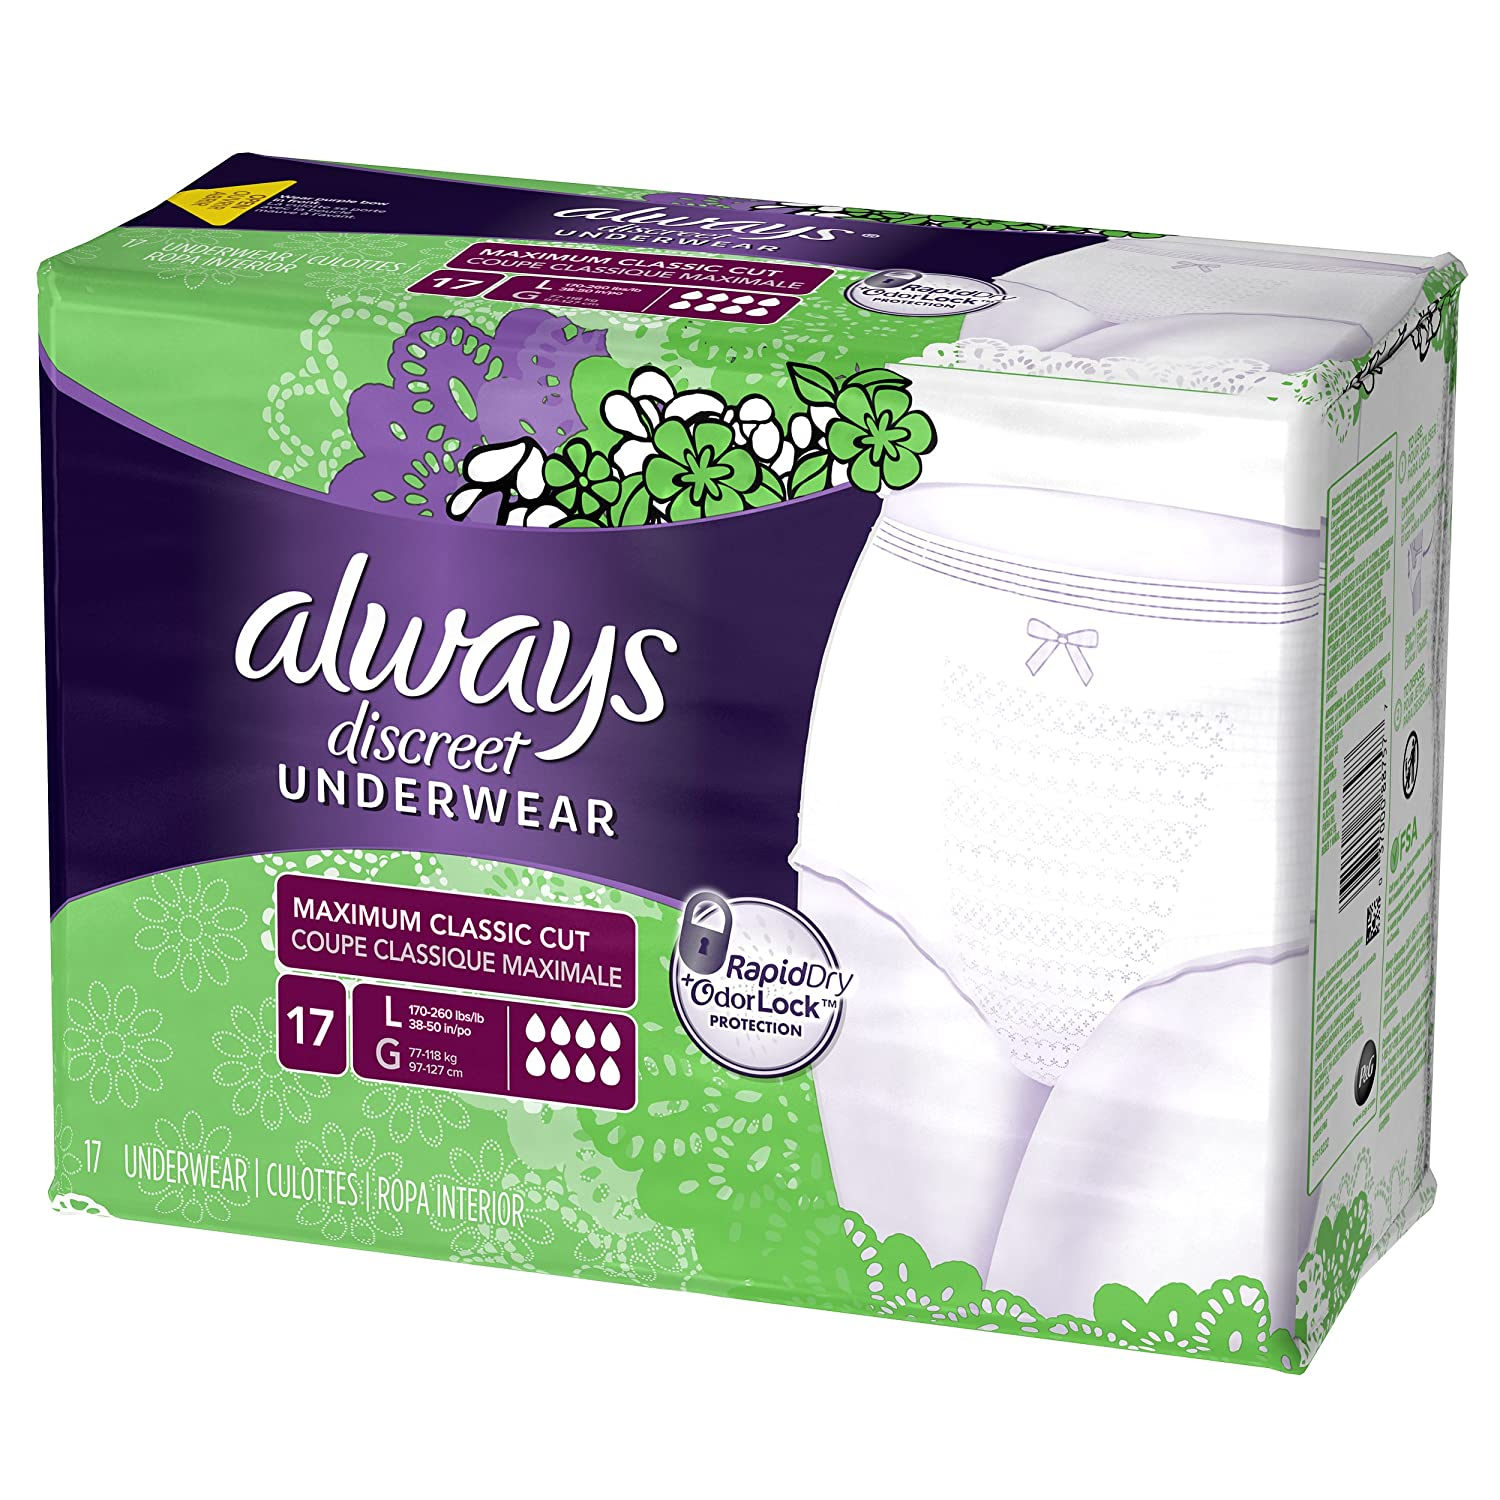 Amazon.com: Always Discreet, Incontinence Underwear for Women, Maximum Classic Cut, Large, 17 Count: Prime Pantry